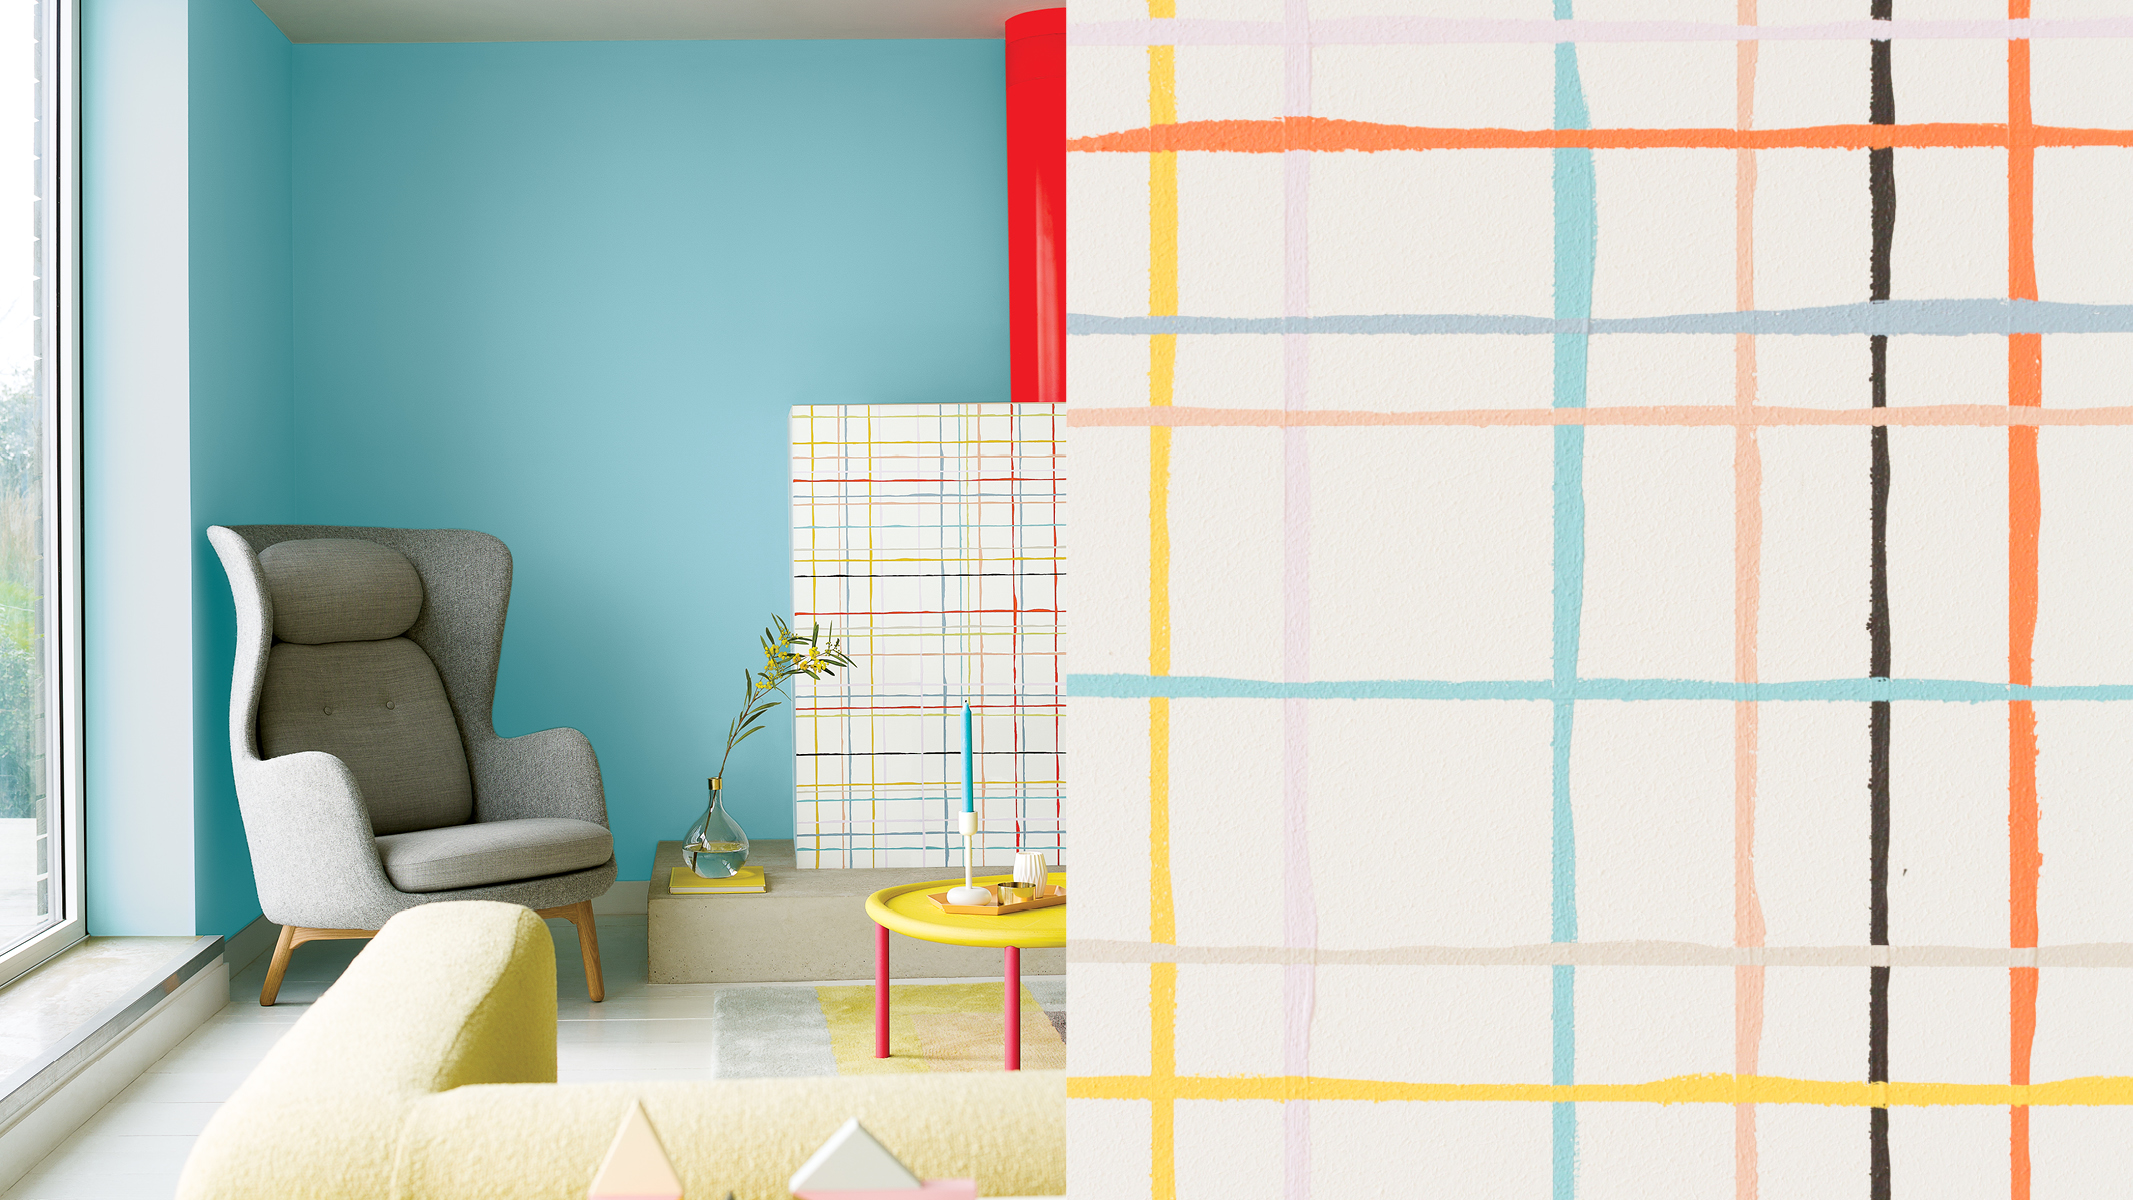 Here, multiple hand-painted grids have been painted in complementary colours for a playful look that evokes controlled chaos.